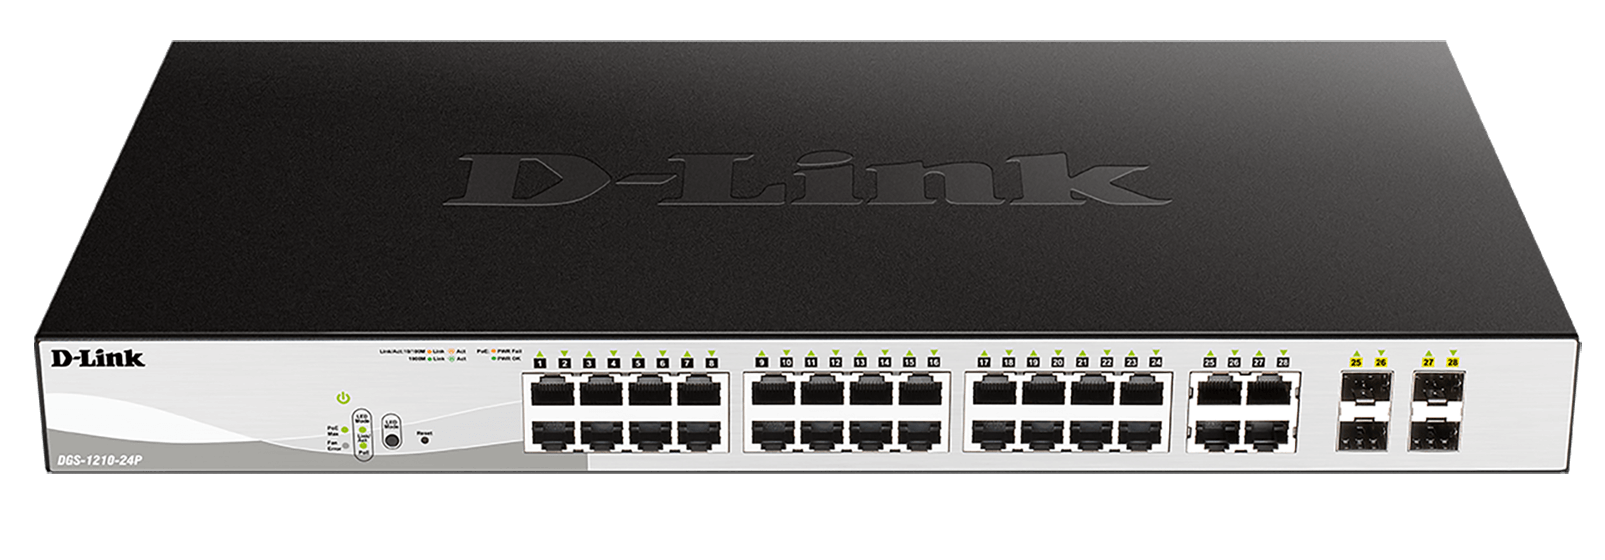 24-Port Gigabit PoE Smart Managed Switch with 4 combo 1000BASE-T/SFP ports (24 x PoE ports, 193W PoE budget)